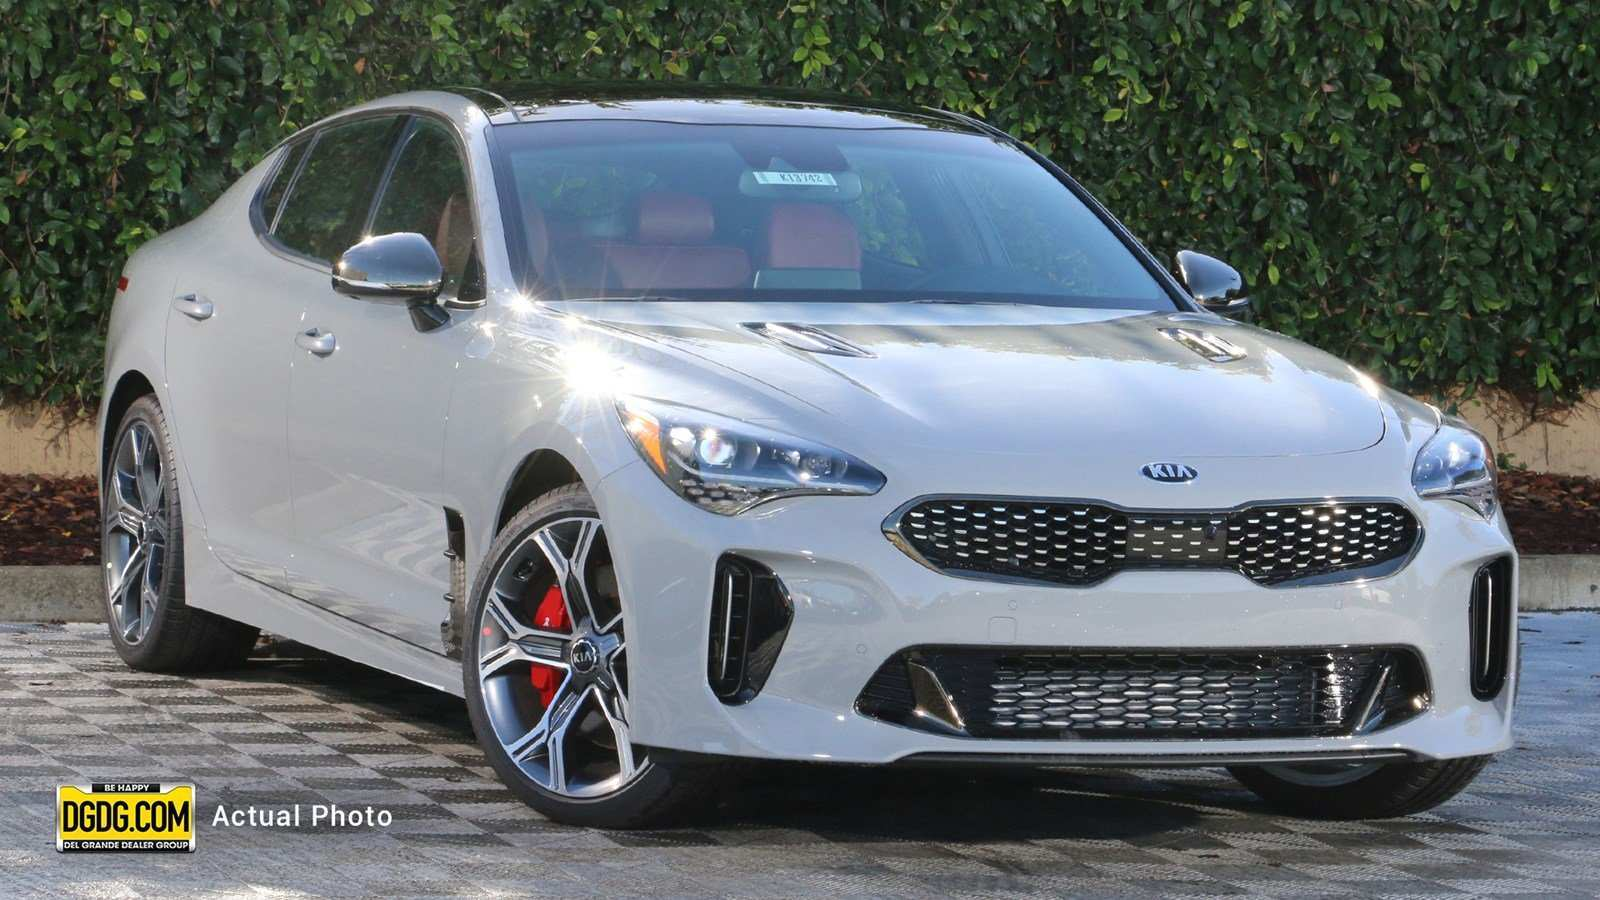 45 Best 2019 Kia Stinger Gt2 Price Design And Review